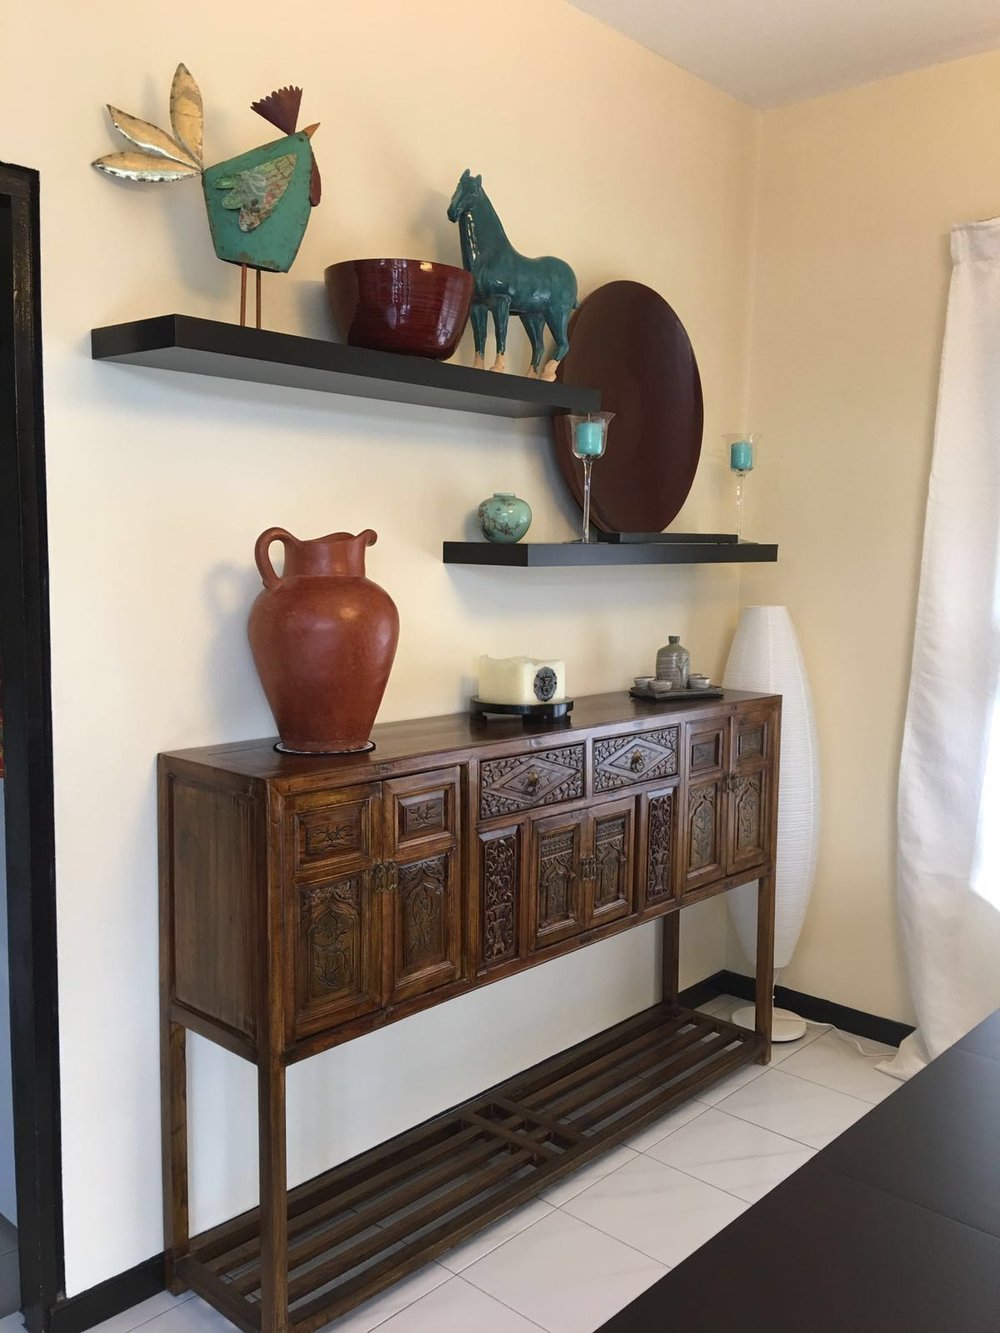 An old carved slim console from Fujian province. Styling & photo courtesy of Sally L.